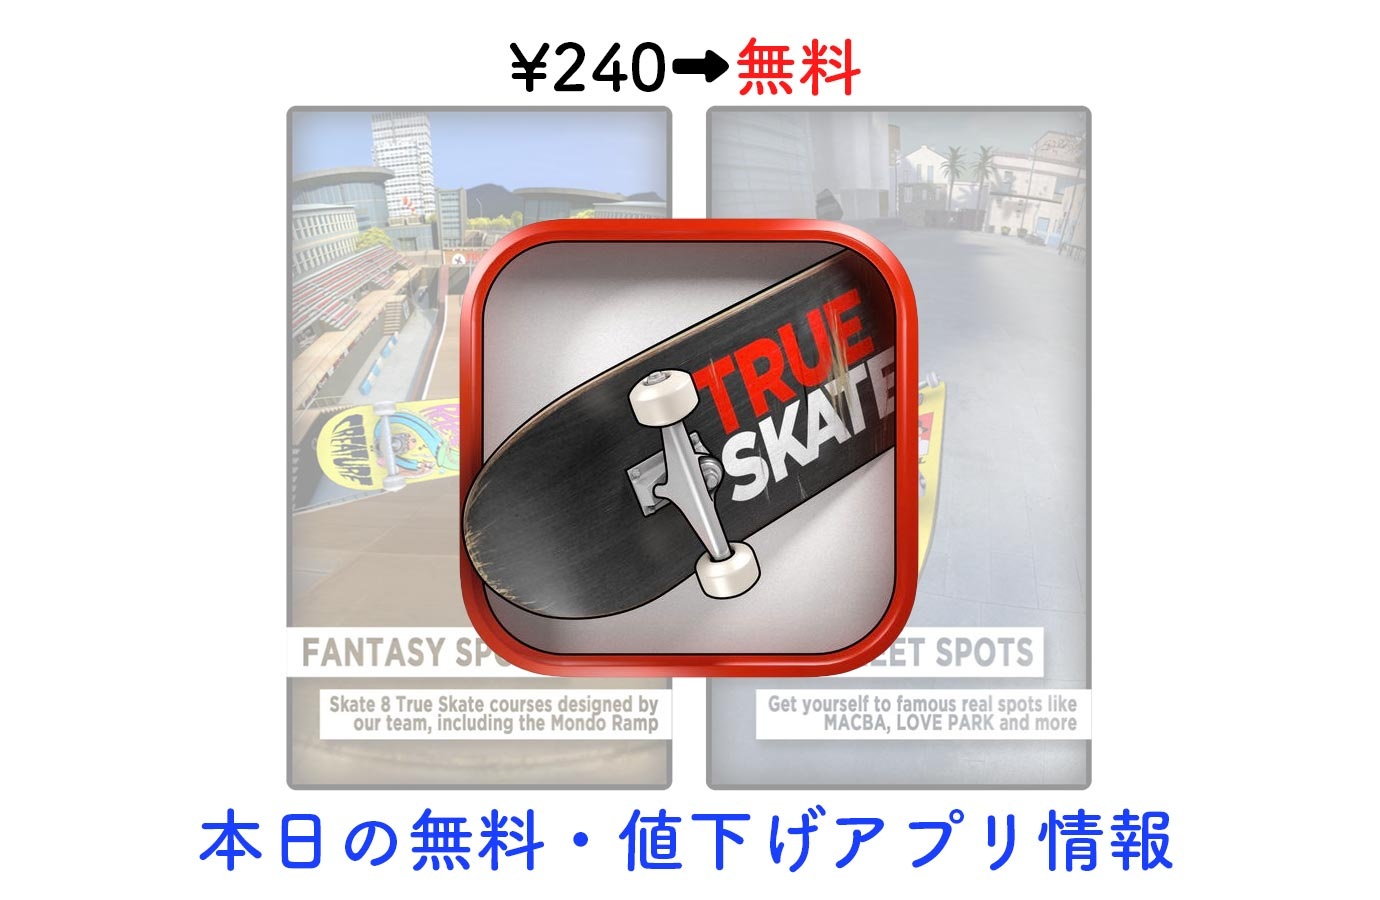 240円→無料、2本指で操作するリアルスケボー「True Skate」など【5/27】セールアプリ情報